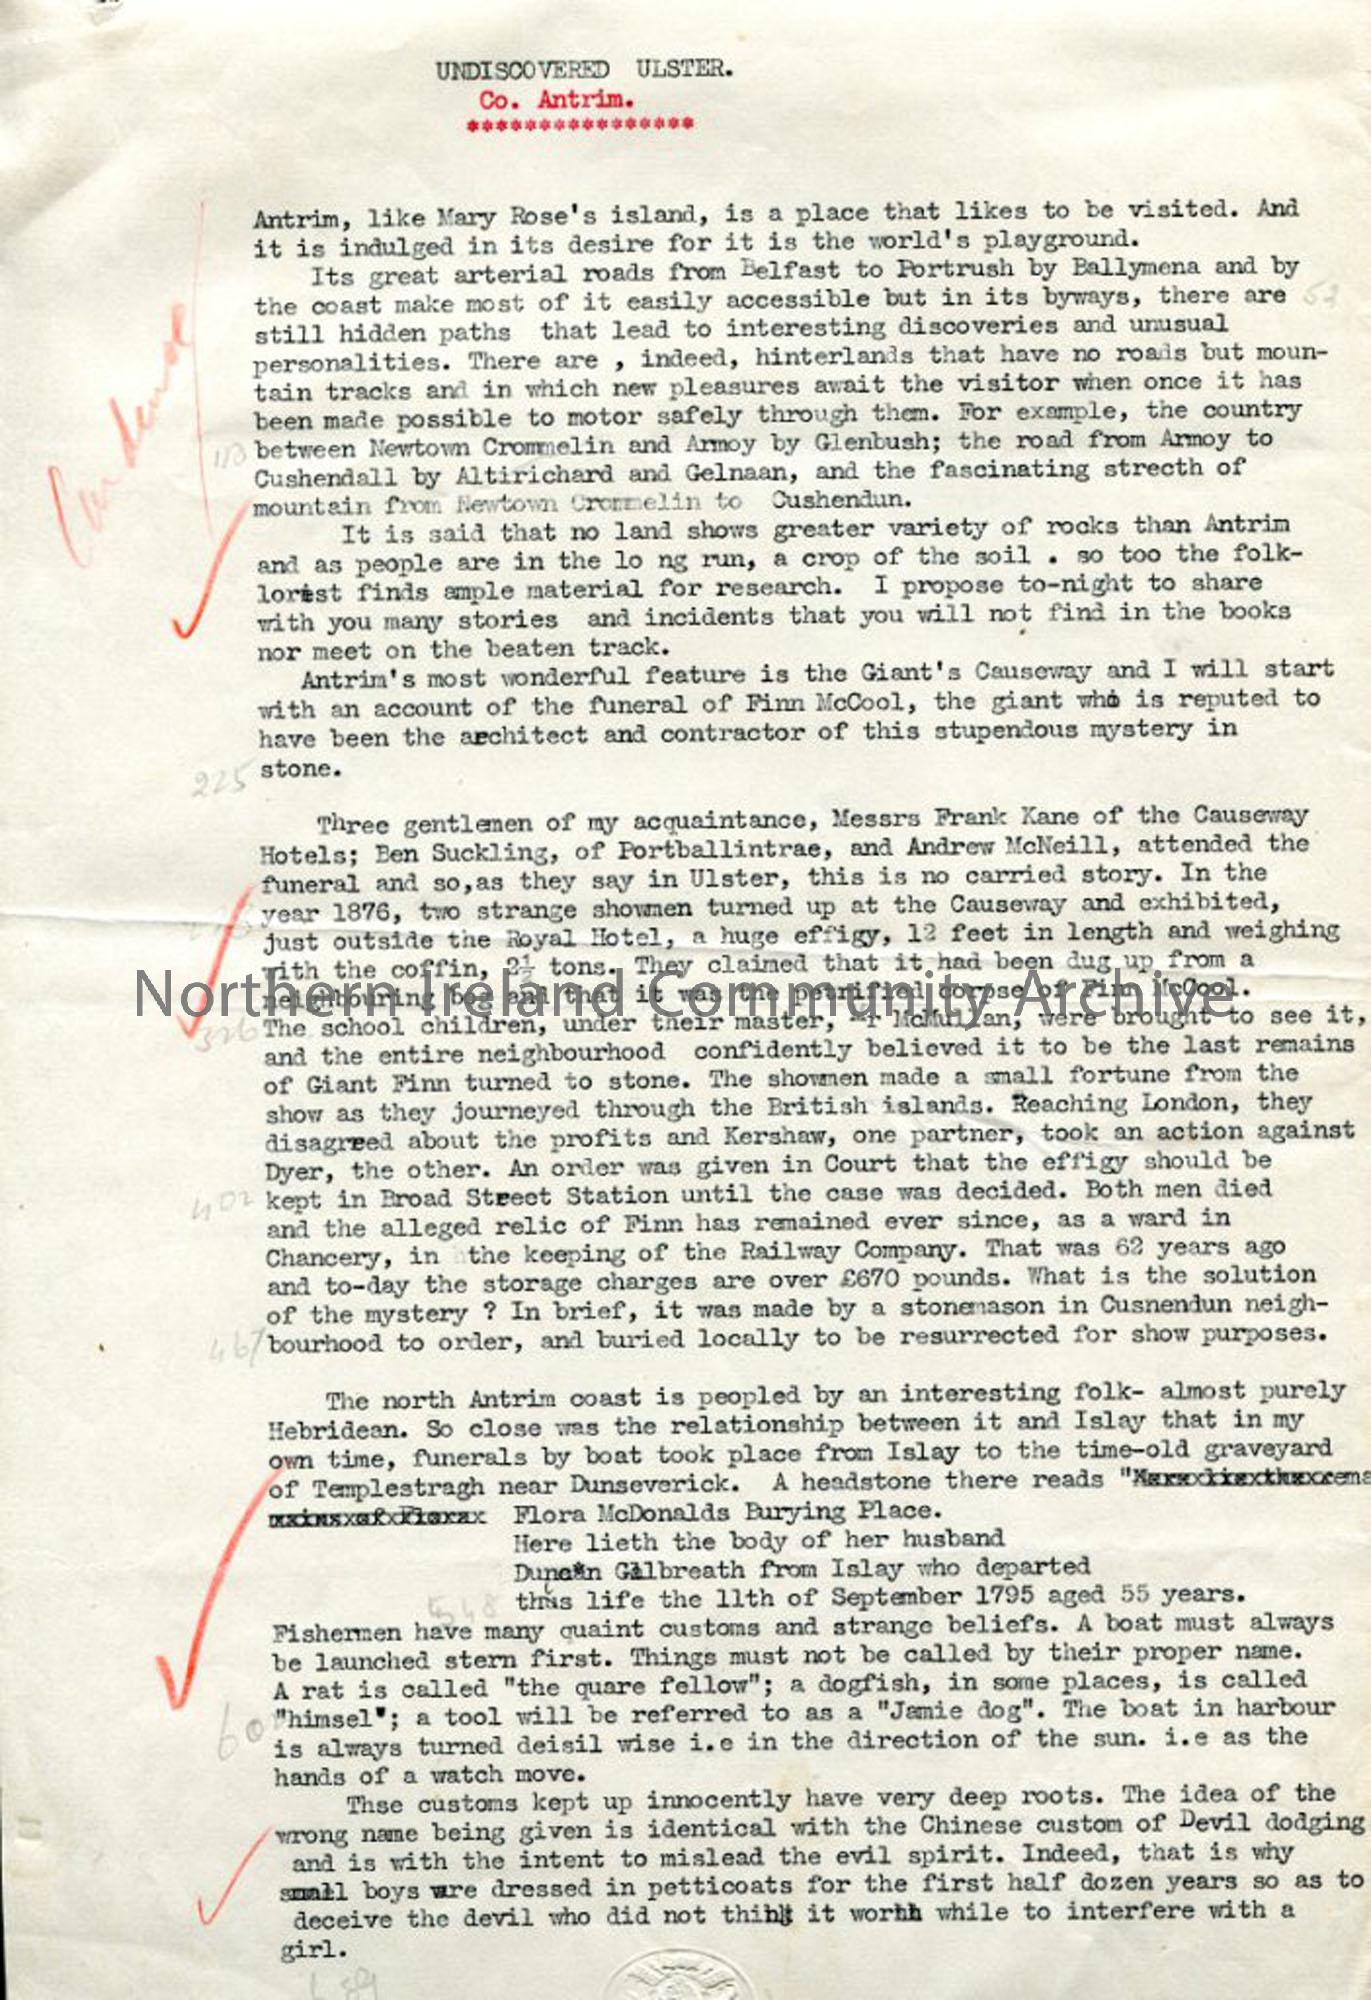 Page 1 of 13 – Script – 'Undiscovered Ulster – Co. Antrim'